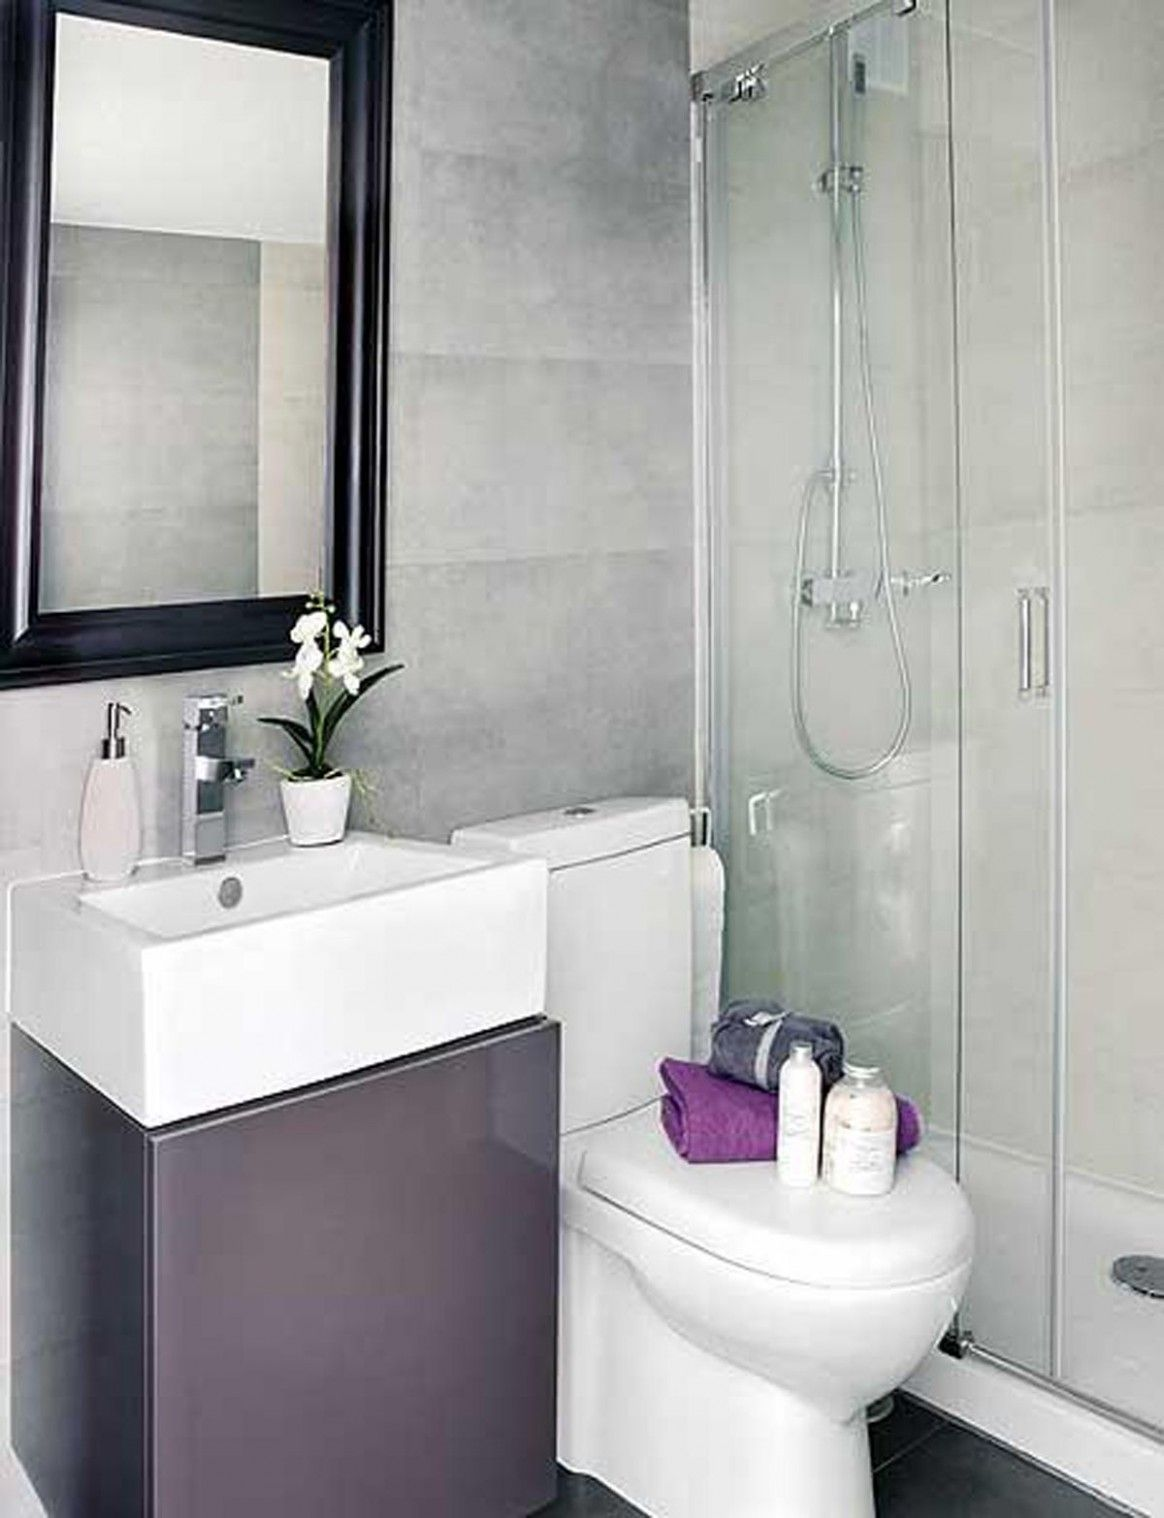 Small Bathroom Ideas Philippines Small Bathroom Bathroom Design Small Modern Apartment Bathroom